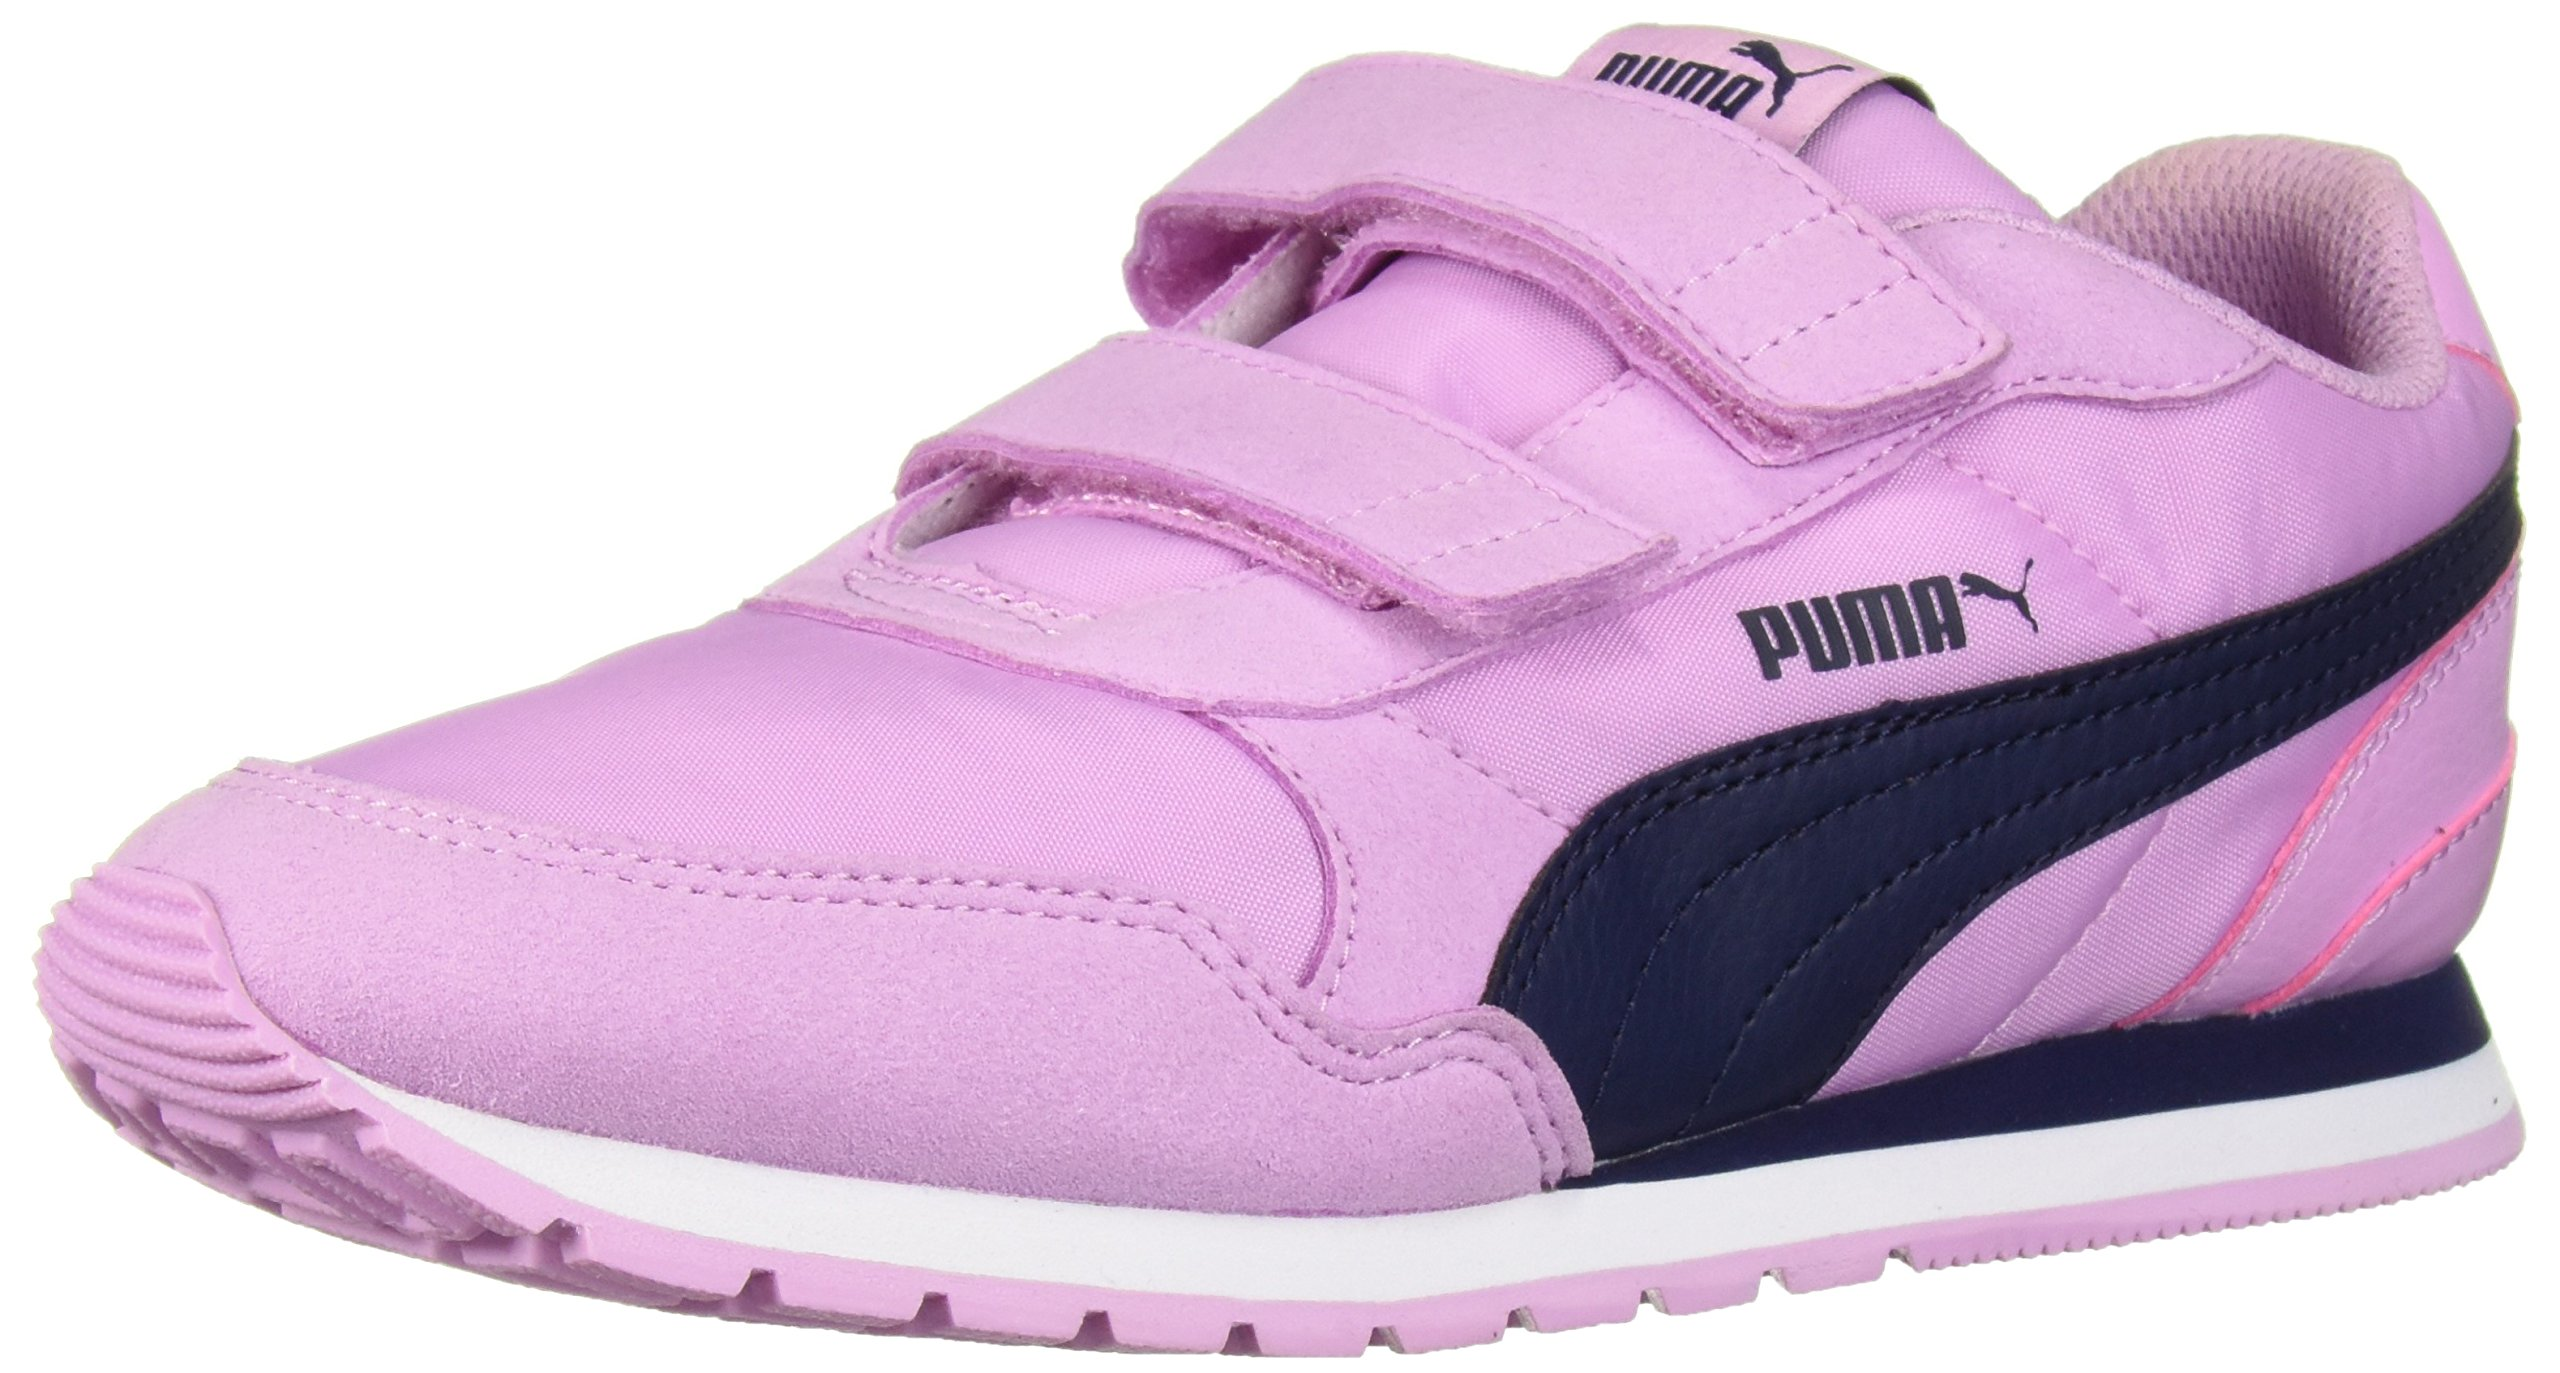 PUMA Unisex-Kids ST Runner NL Velcro Sneaker, Orchid-Peacoat, 2.5 M US Little Kid